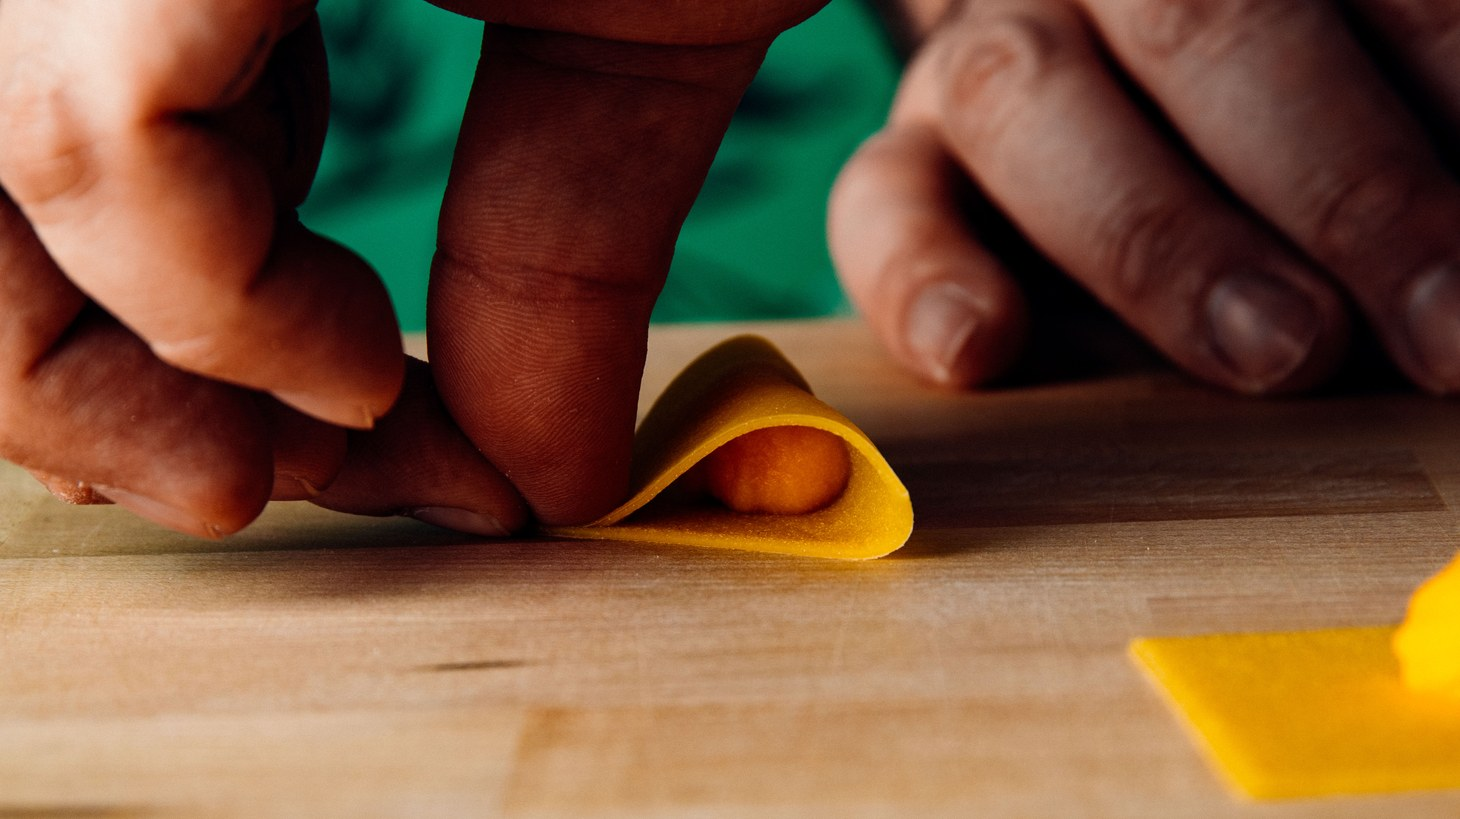 """Excerpted from """"American Sfoglino: A Master Class in Handmade Pasta (Pasta Cookbook, Italian Cooking Books, Pasta and Noodle Cooking)"""" by Evan Funke."""